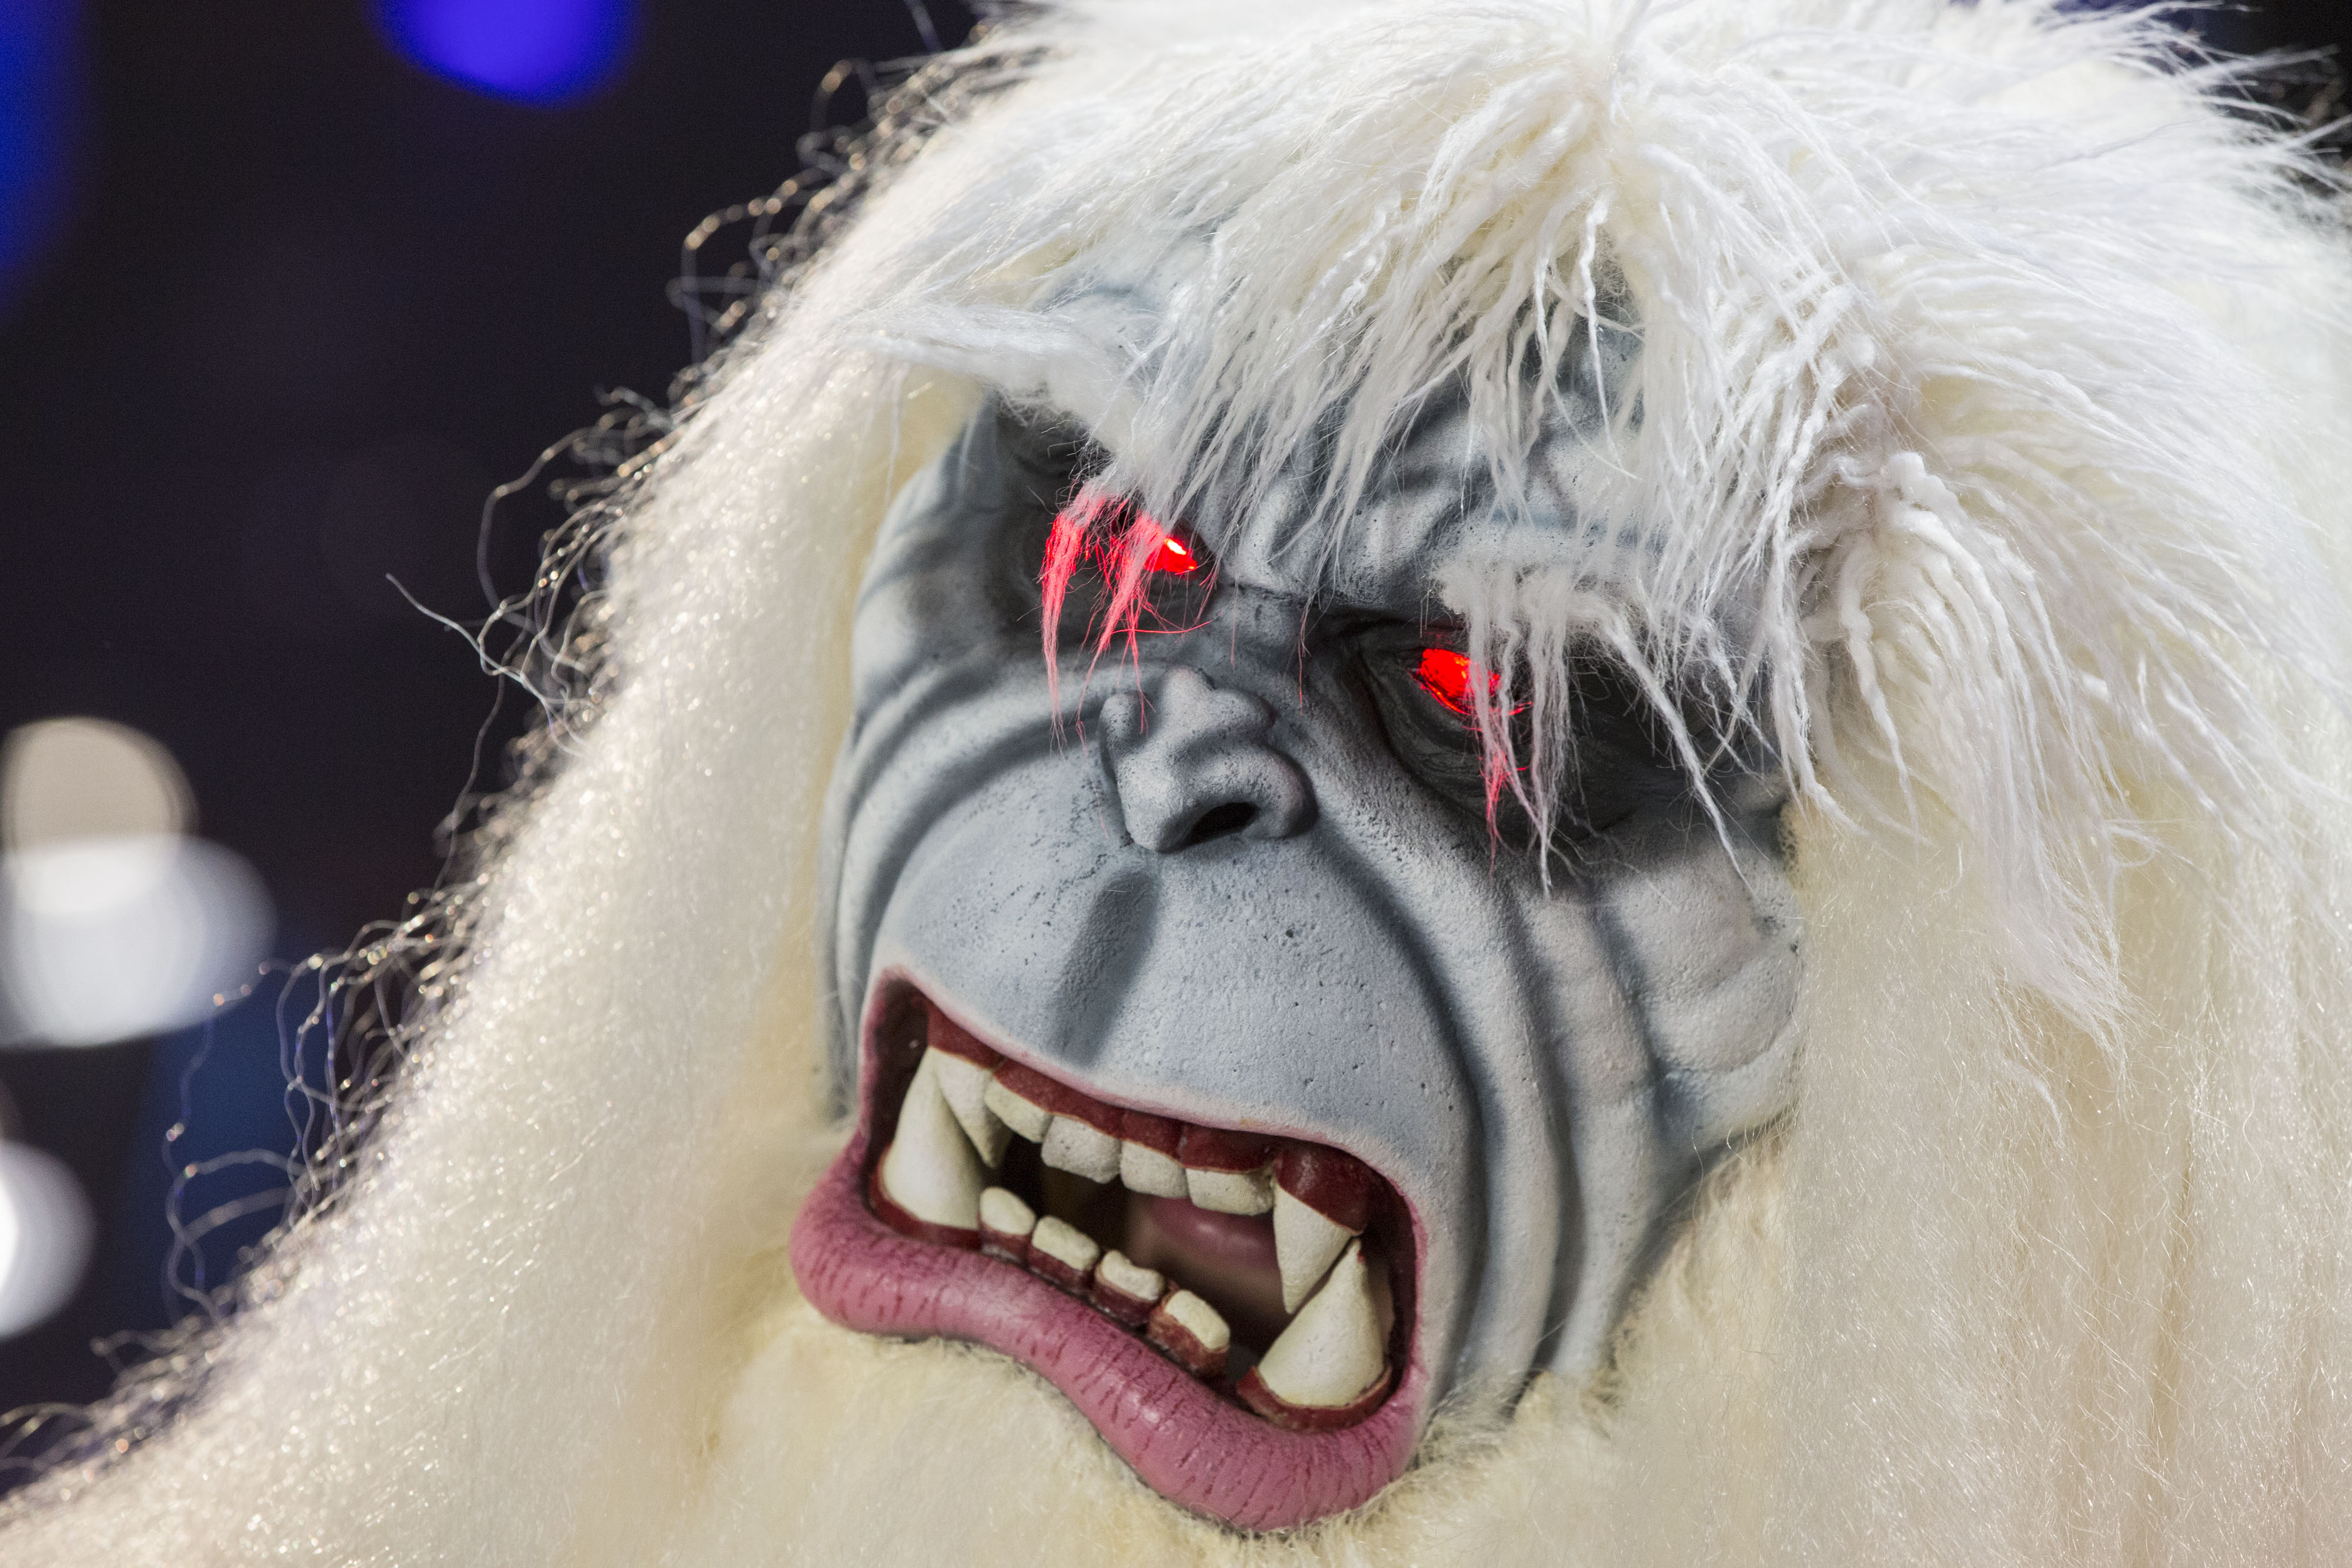 The eyes of an attendee dressed as a Yeti are illuminated after winning a costume contest during the D23 Expo 2015 in Anaheim, California, U.S., on Friday, Aug. 14, 2015. The D23 Expo 2015, presented by the Official Disney Fan Club, includes sneak peeks of upcoming films from The Walt Disney Studios, celebrity appearances, as well as a look at what's coming from Disney Parks and Resort. Photographer: Patrick T. Fallon/Bloomberg via Getty Images